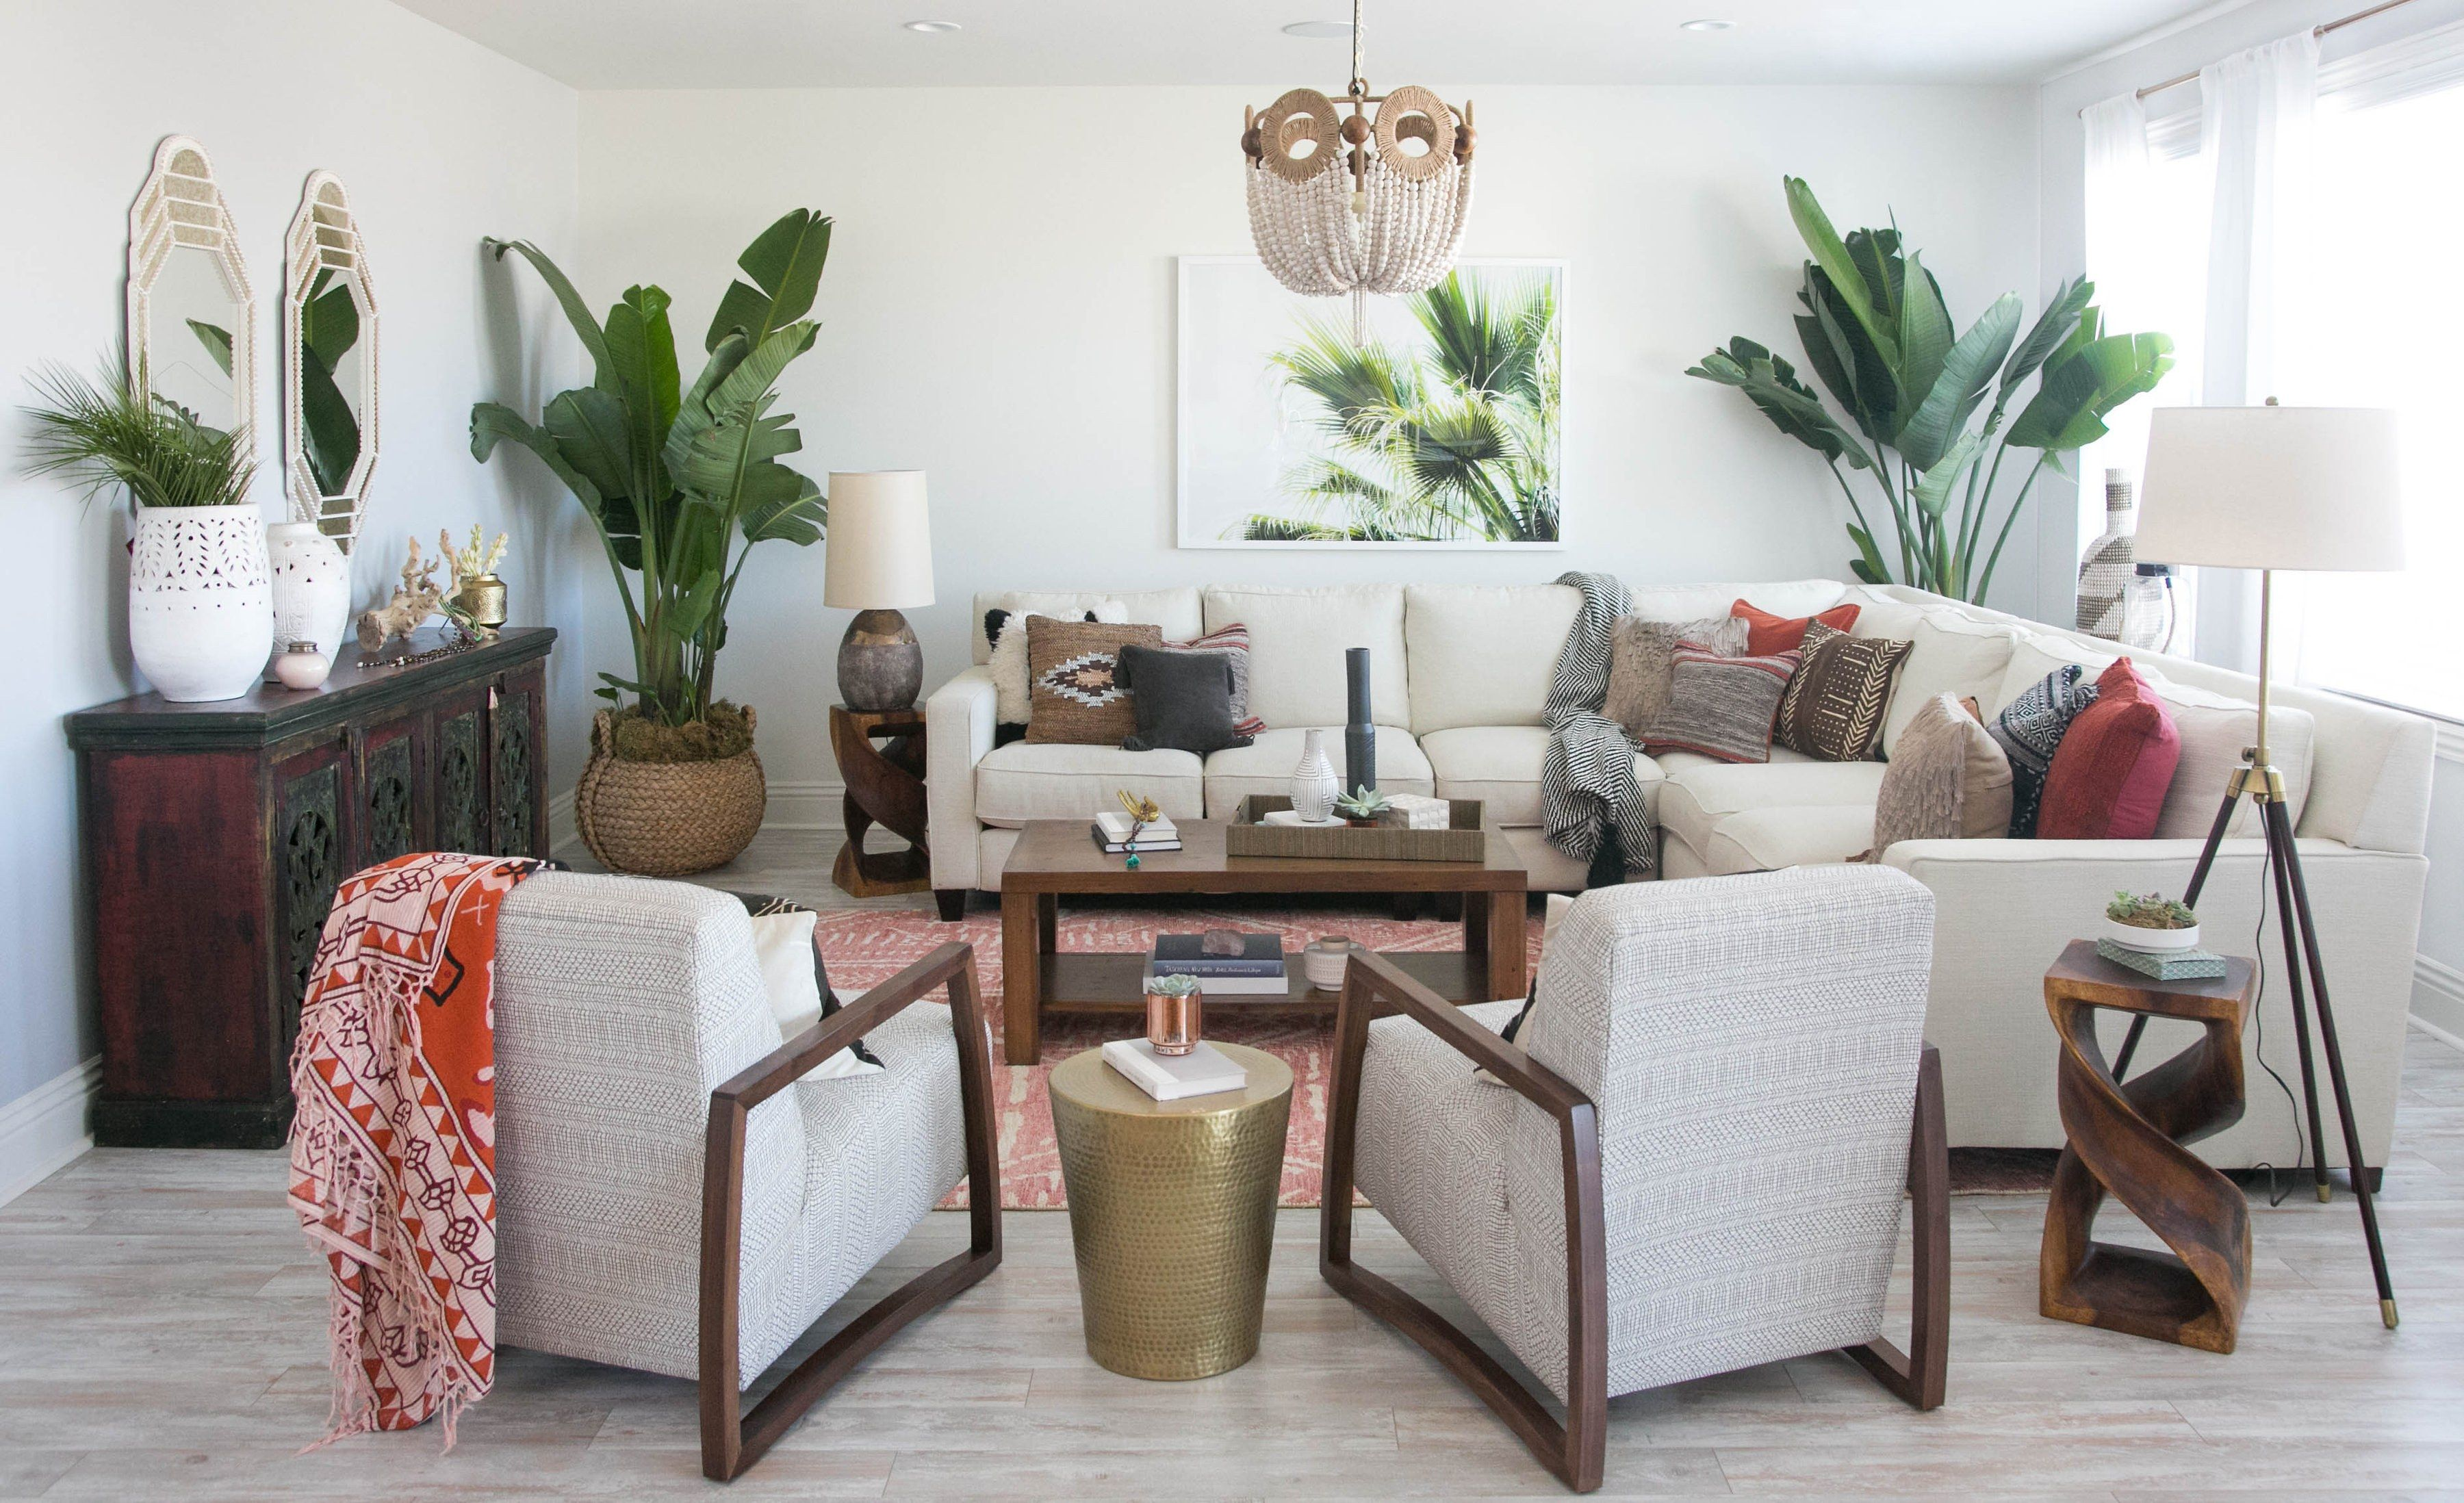 Audrina Patridge Revamps A Drab Kitchen And Living Room Into A Balinese Inspired Oasis Living Room Designs Popular Living Room Home Living Room